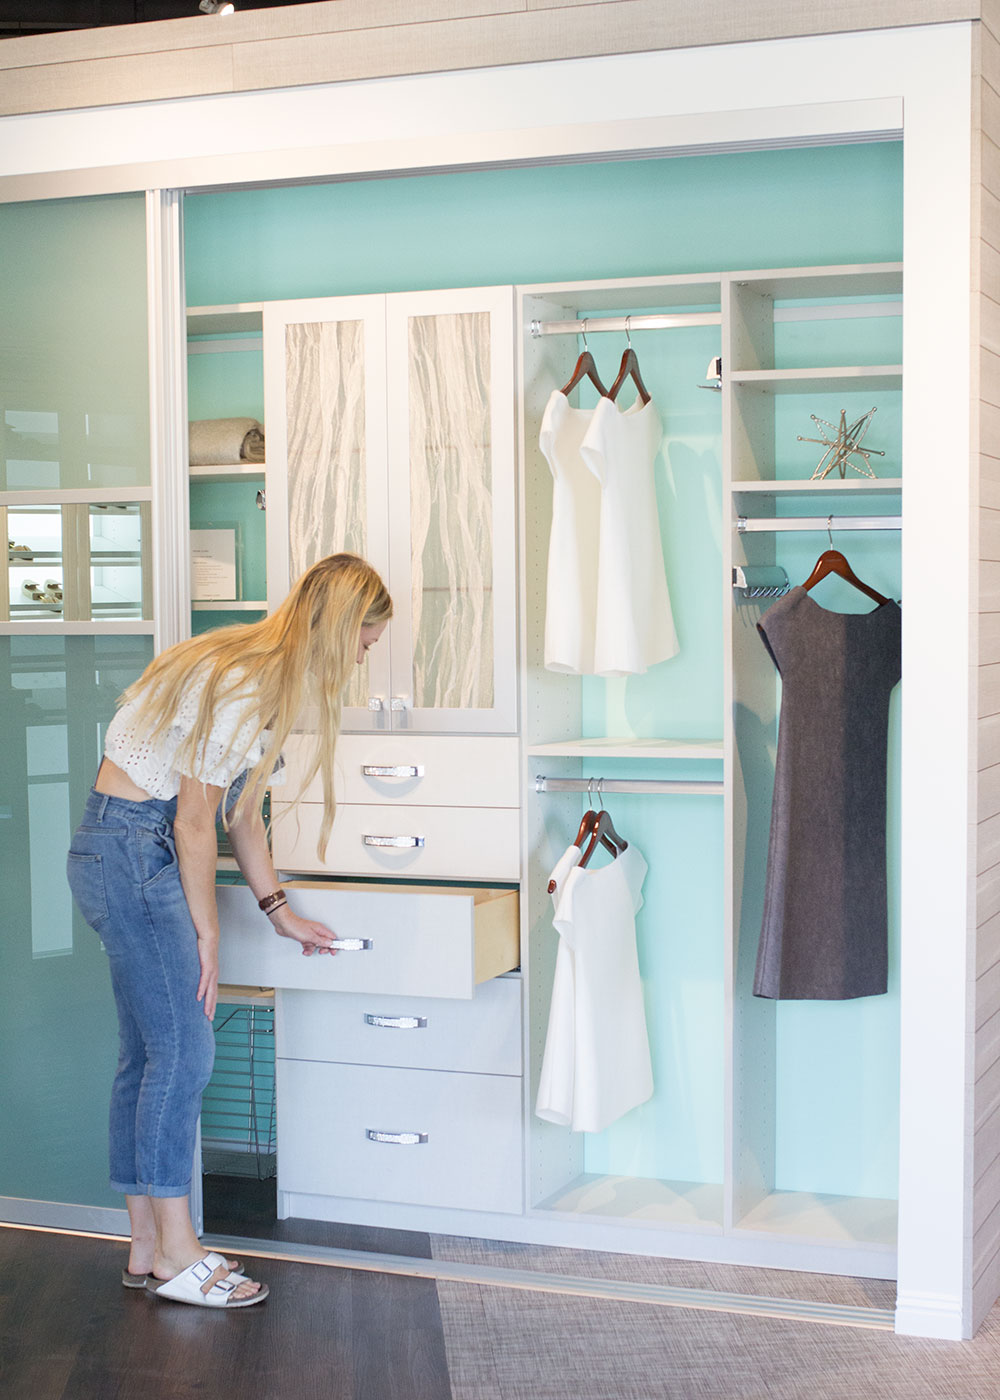 getting all the ideas and checking out the craftsmanship of the california closets system | thelovedesignedlife.com #californialclosets #thingsorganizedneatly #mariekondoxcaclosets